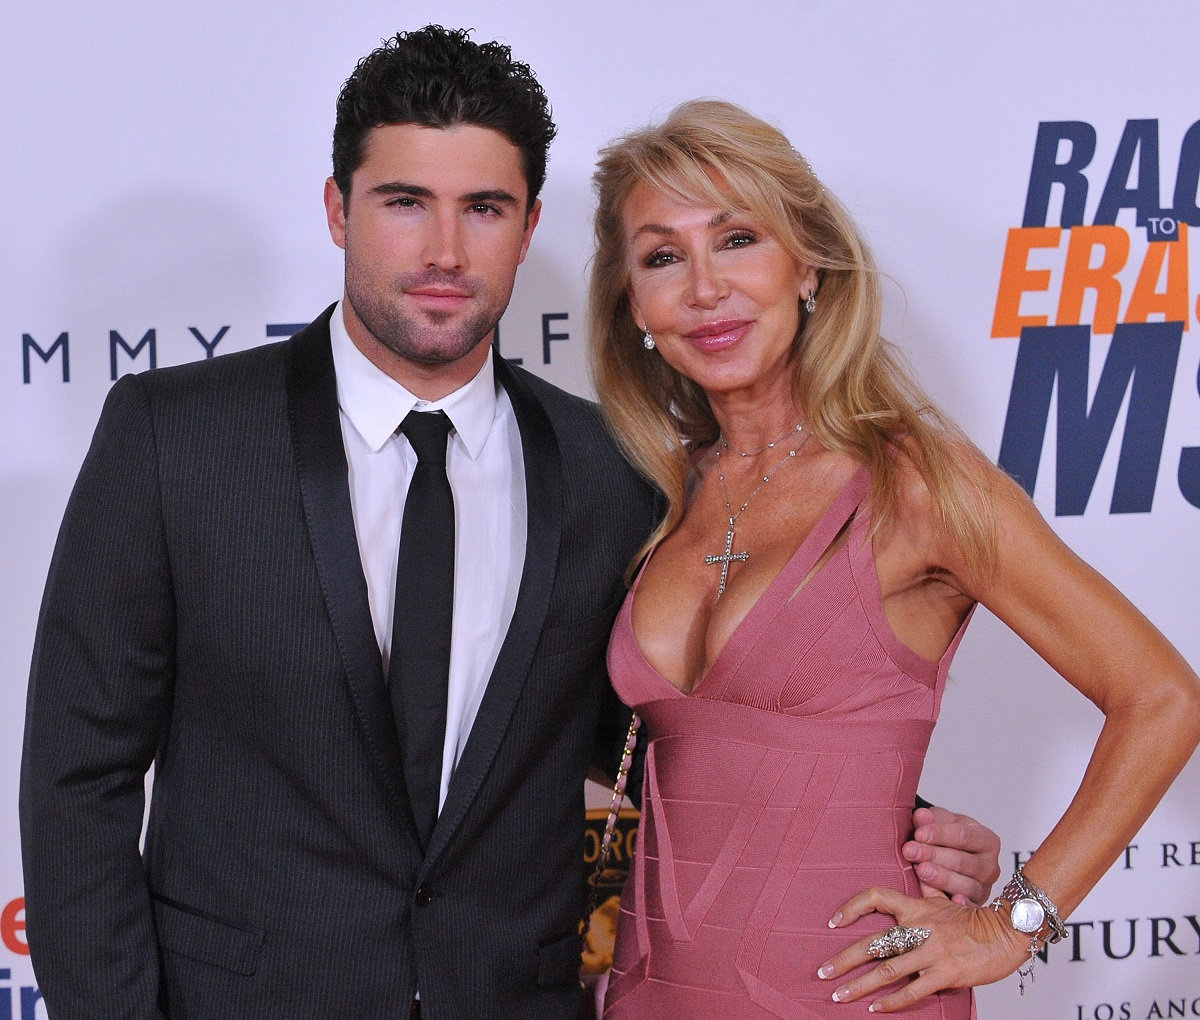 Brody Jenner and Linda Thompson in 2010